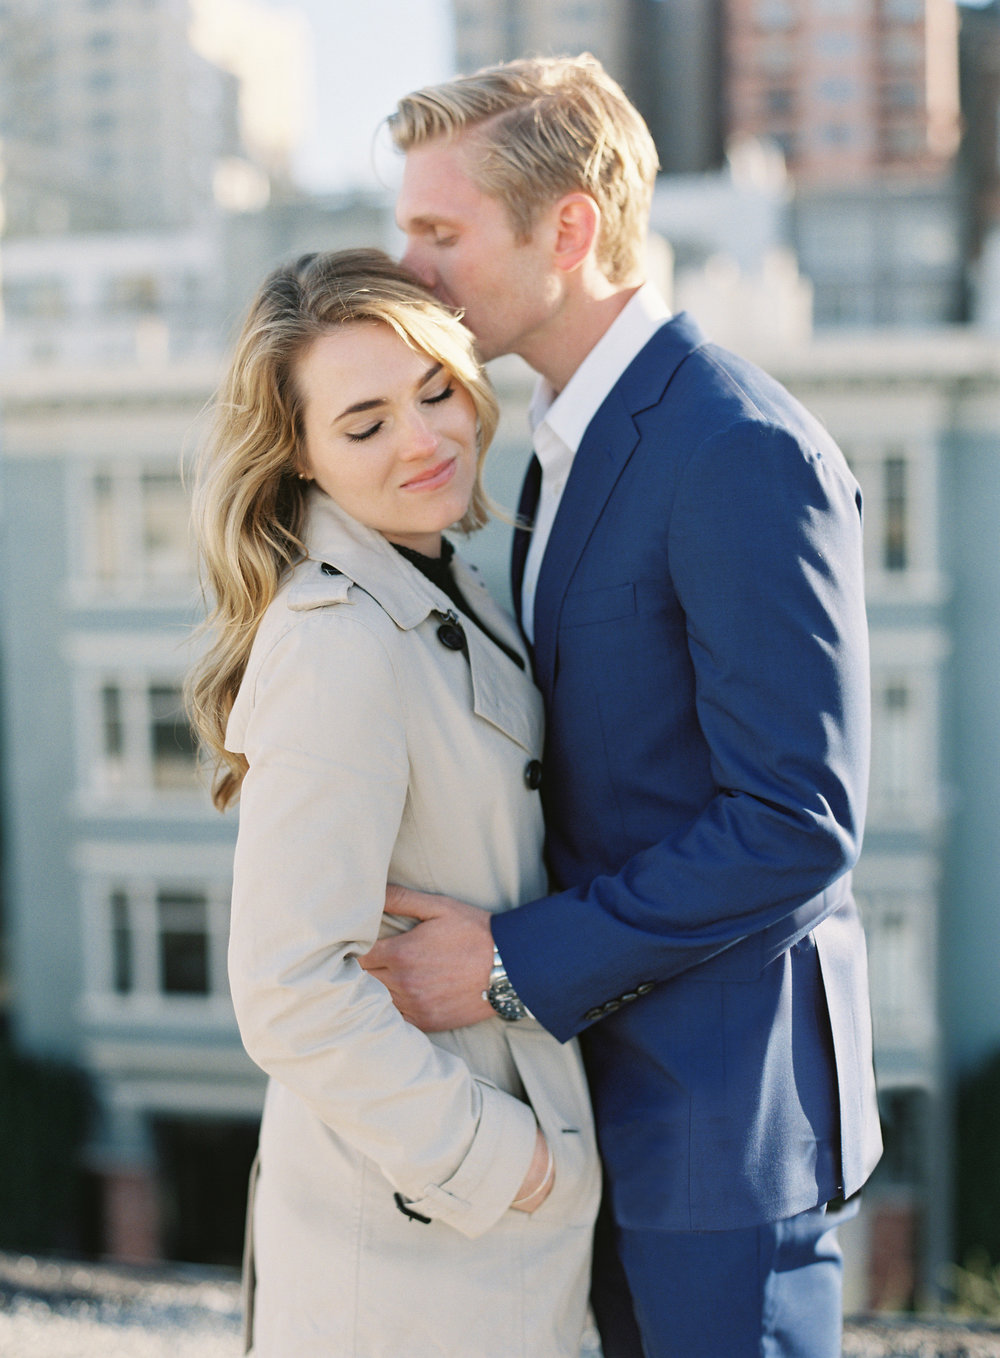 Jessica and Andrew Engagement-Carrie King Photographer-102.jpg